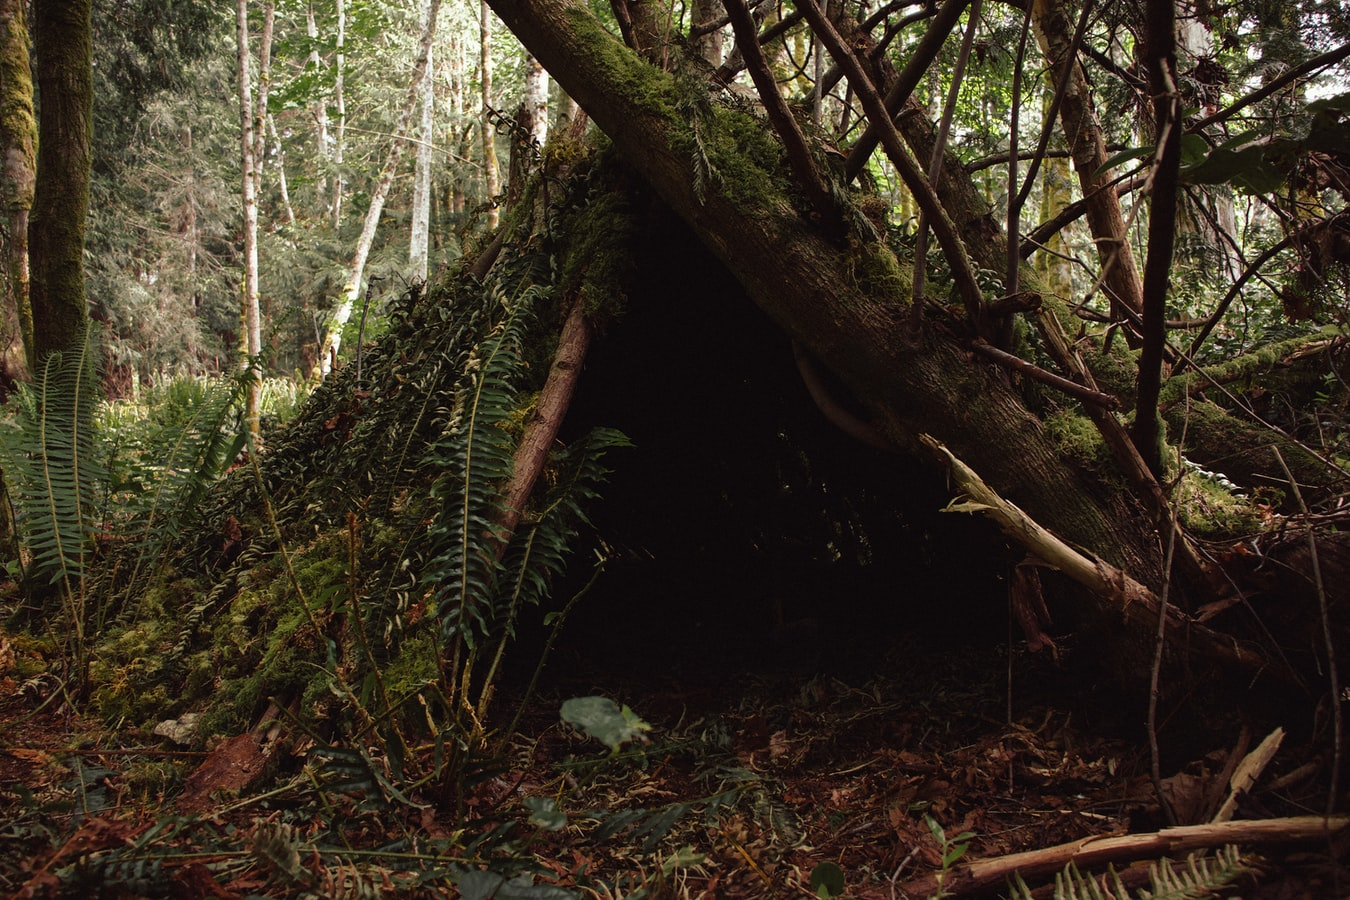 A woodland shelter made out of branches